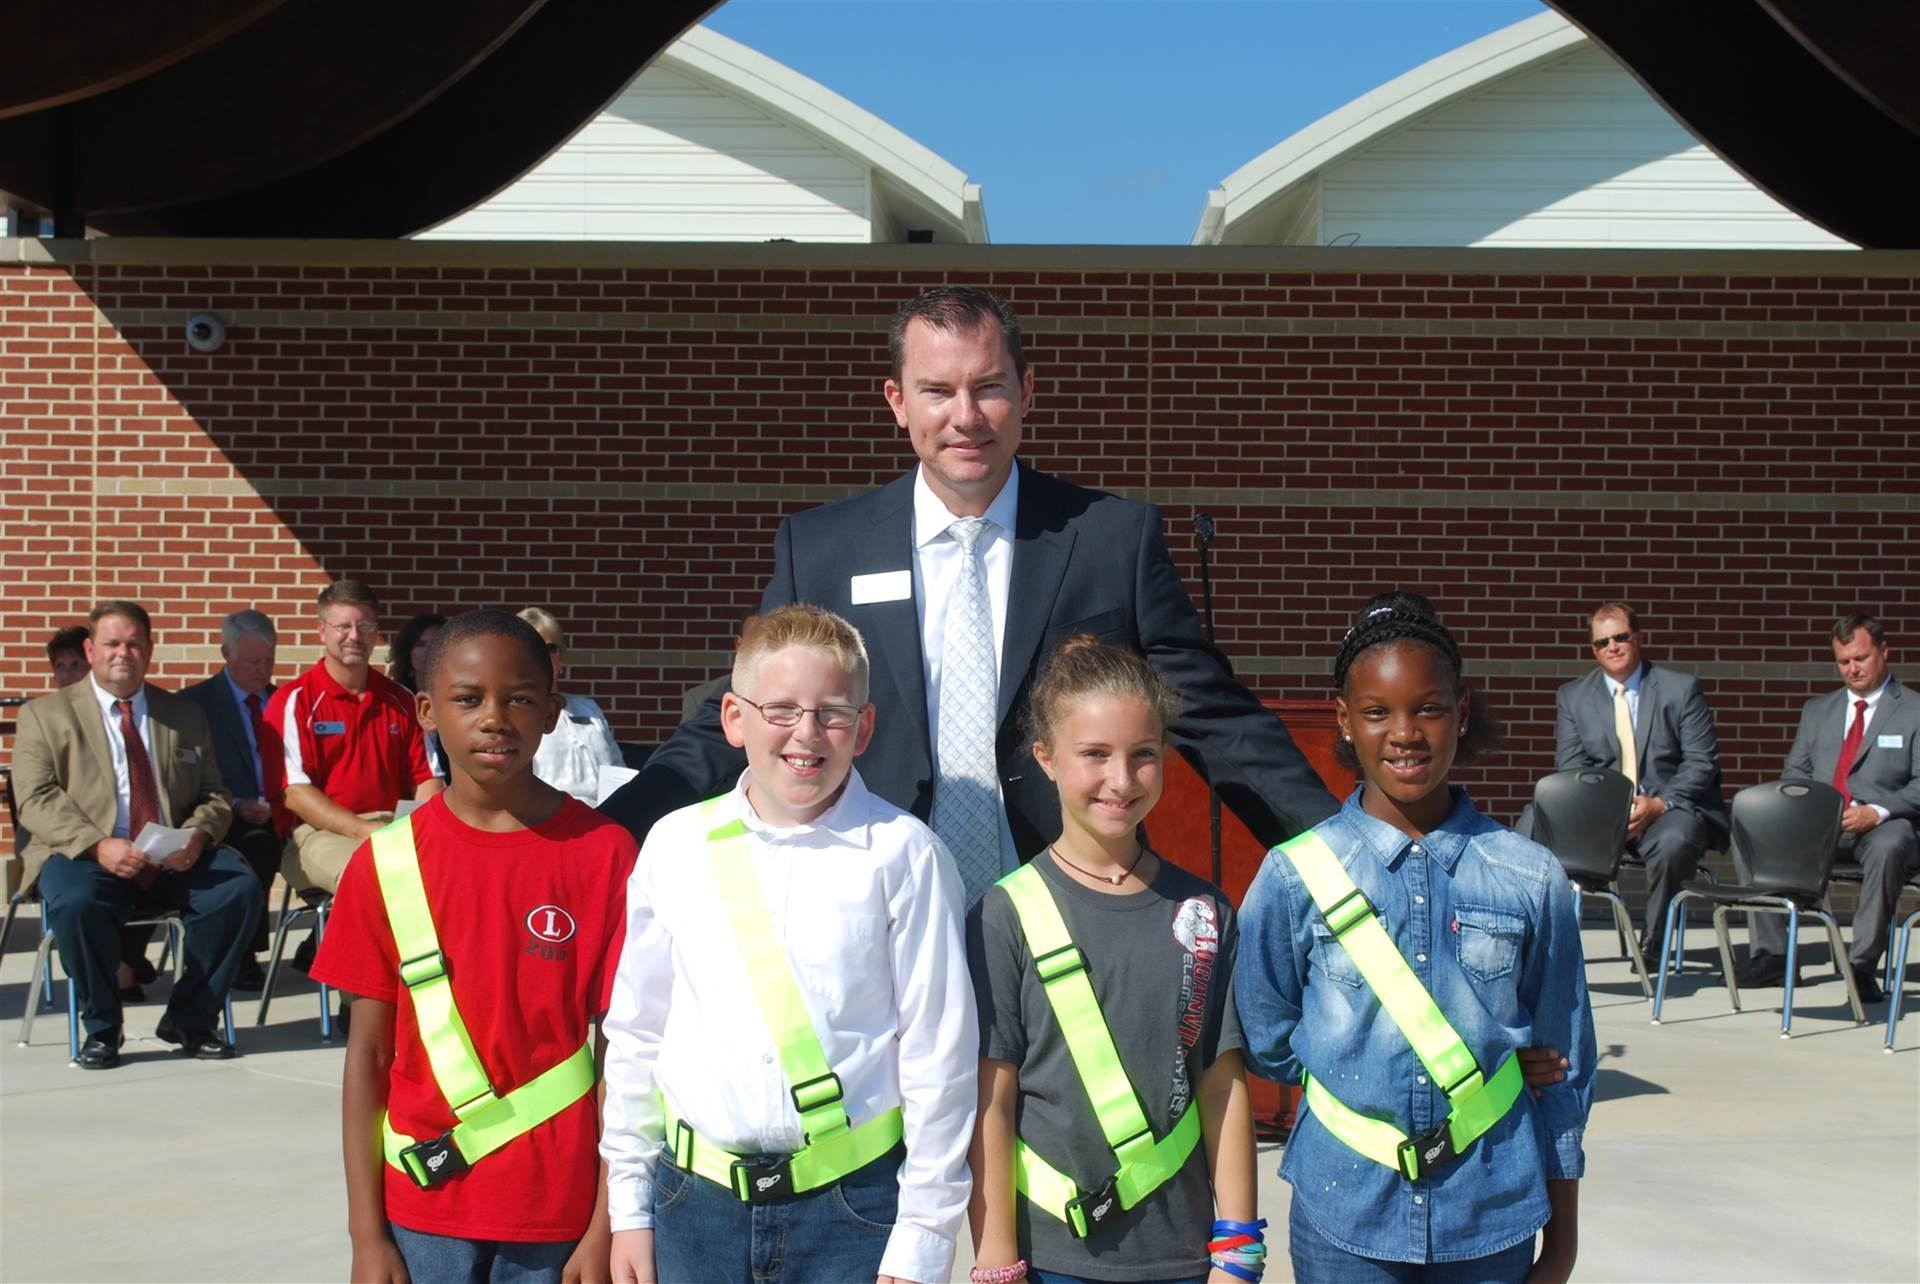 Safety Patrol students with Dr. Franklin at the LES grand opening.